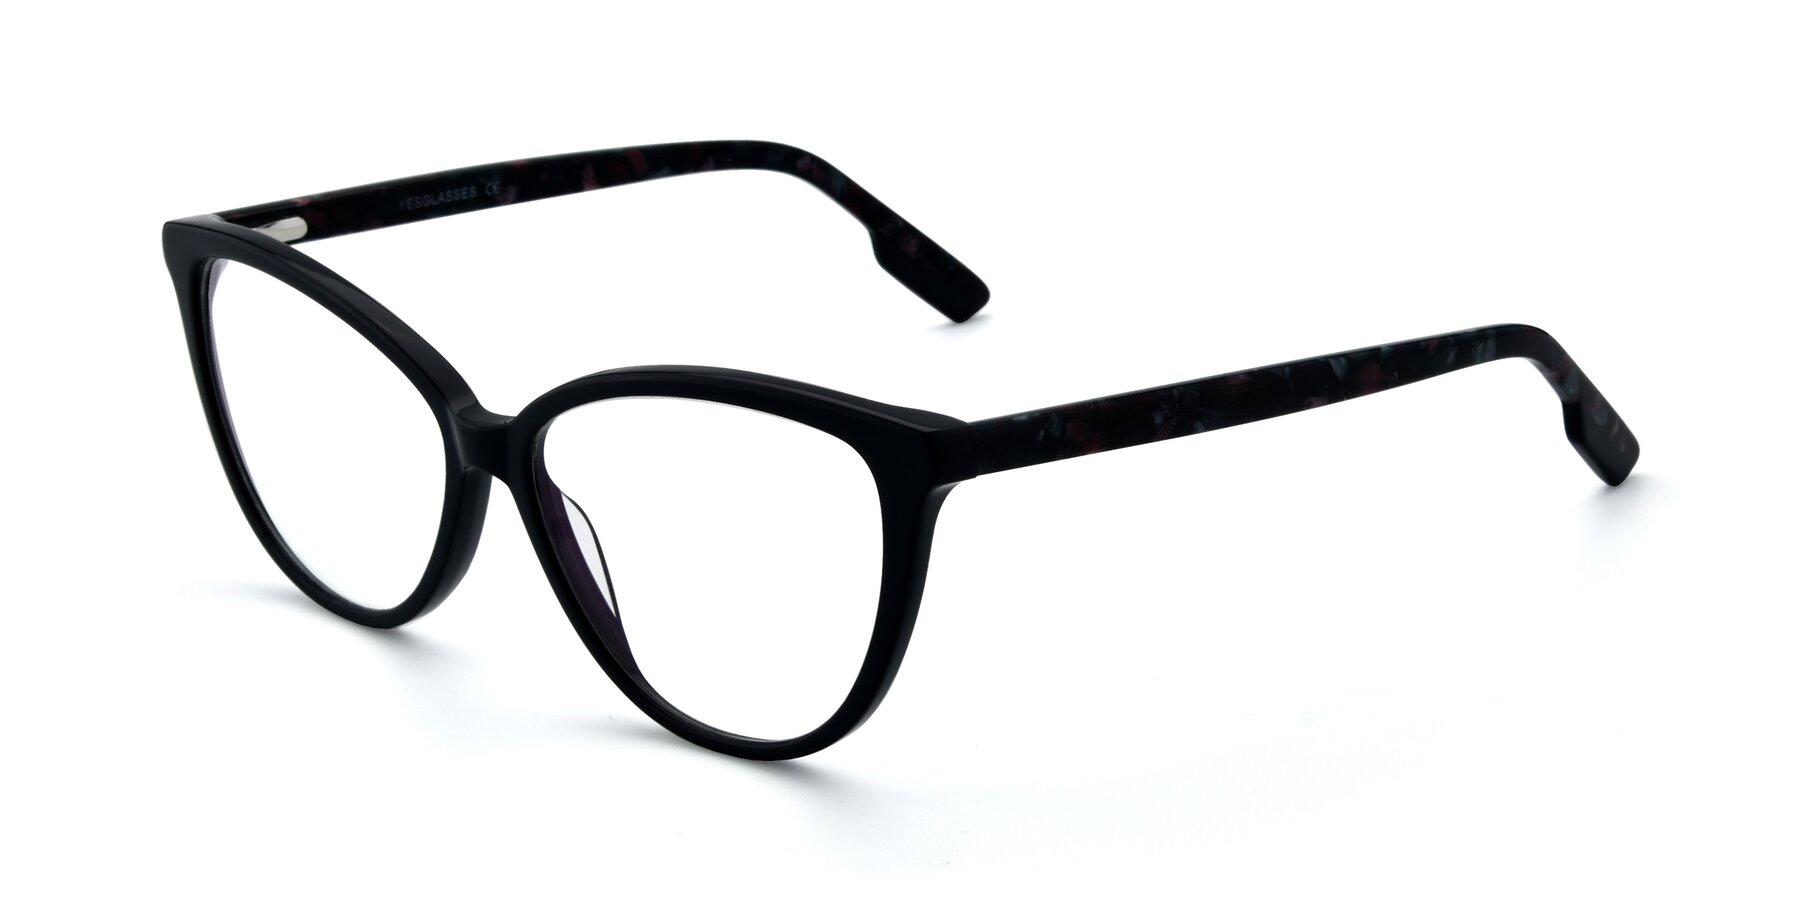 Angle of 17324 in Dark Blue with Clear Eyeglass Lenses